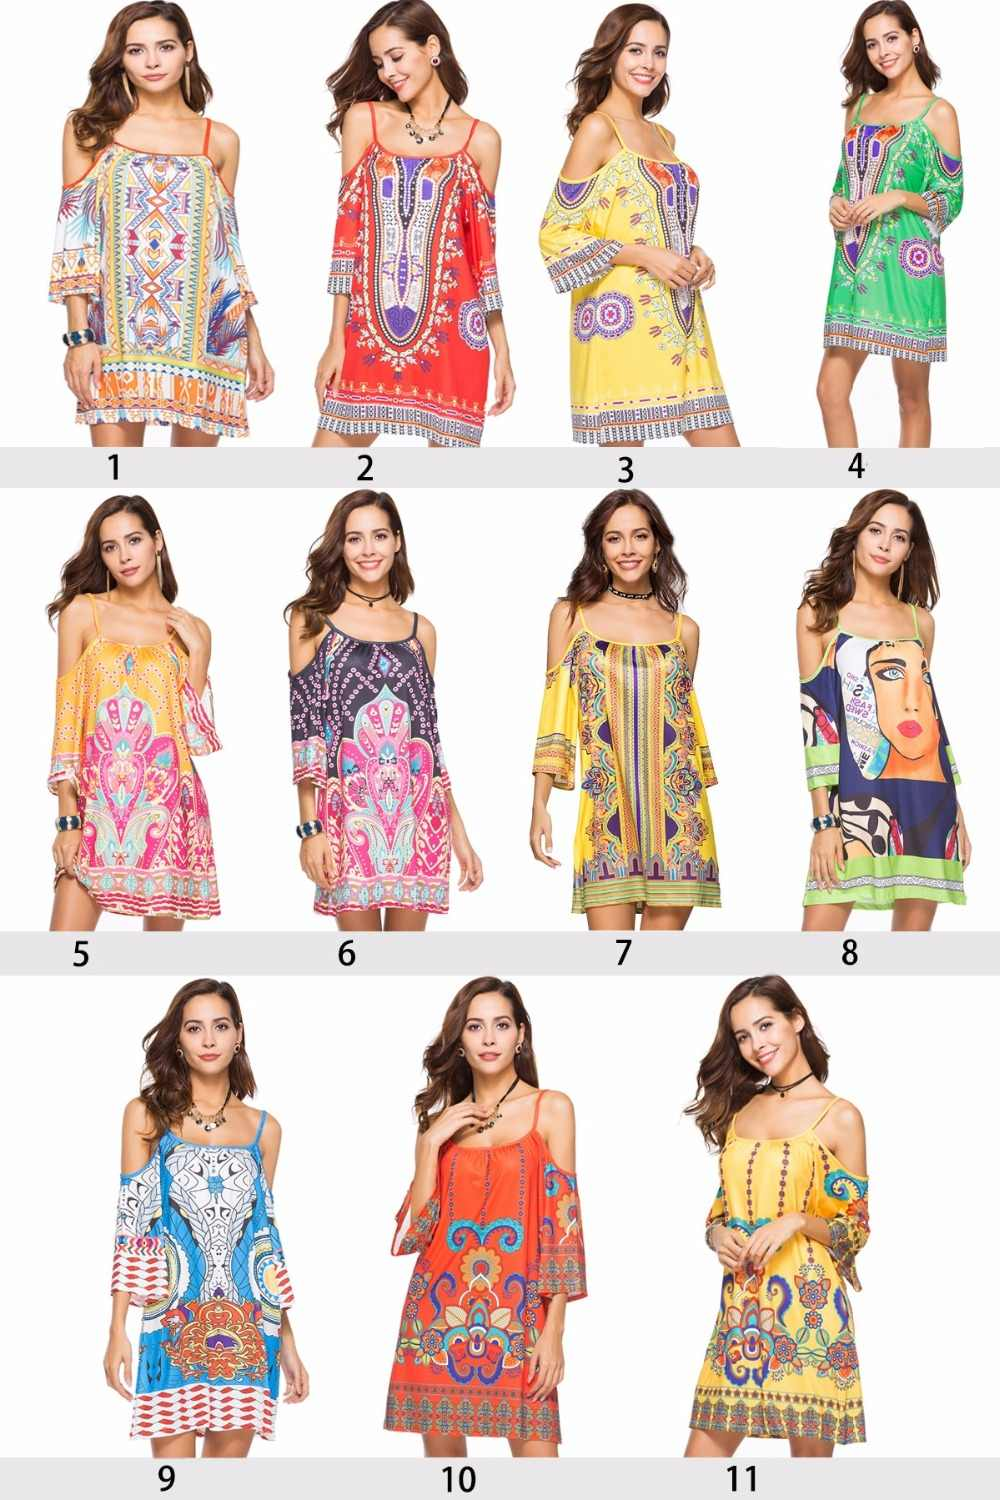 5f06b0ec77 ... Summer New Hot Sexy Swimsuit Cover Up Popular Beach Dress Cover Girls  Lady Strap Off Shoulder ...